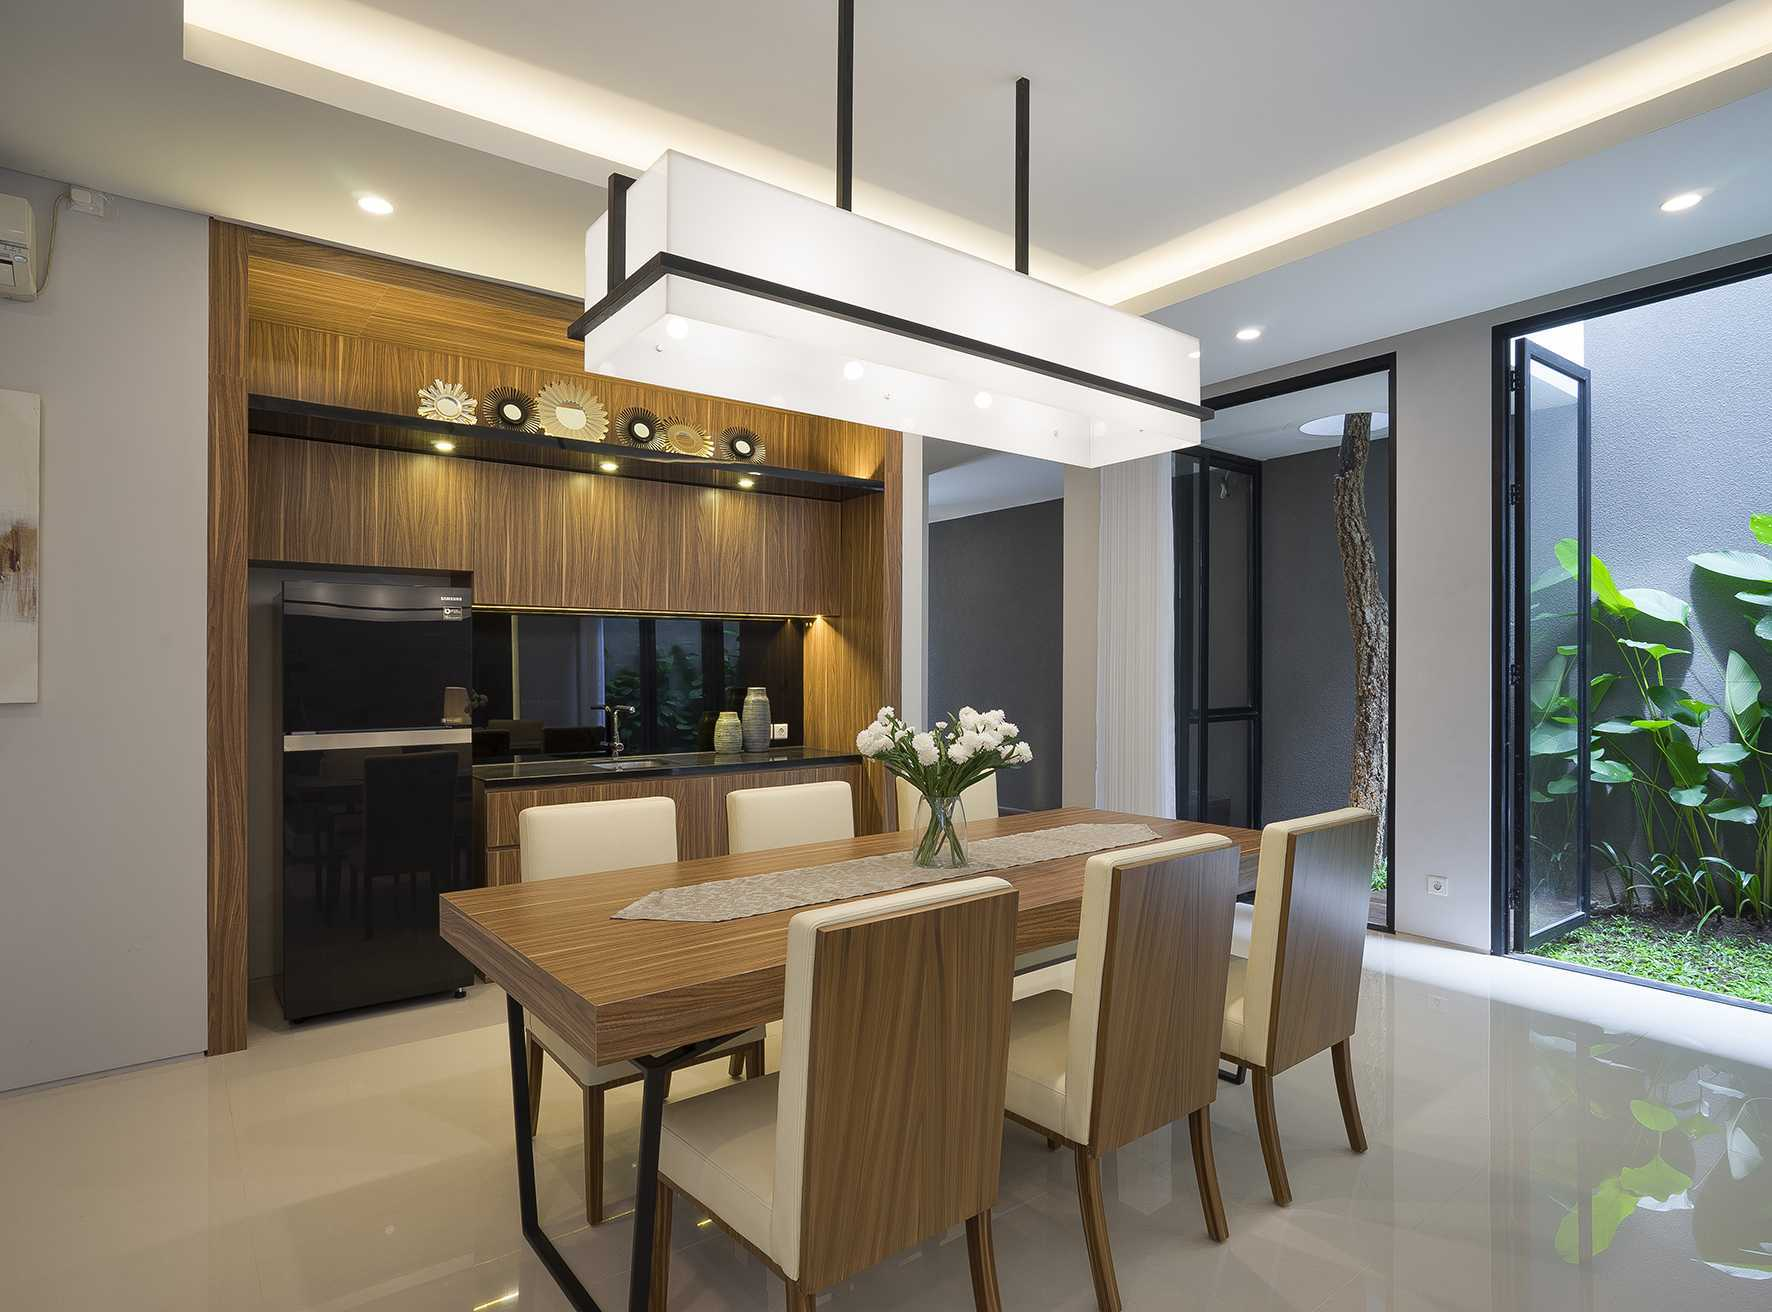 """Simple Projects Architecture """"s"""" House Pakuwon Indah, Surabaya - Indonesia Pakuwon Indah, Surabaya - Indonesia Newedittres   45725"""